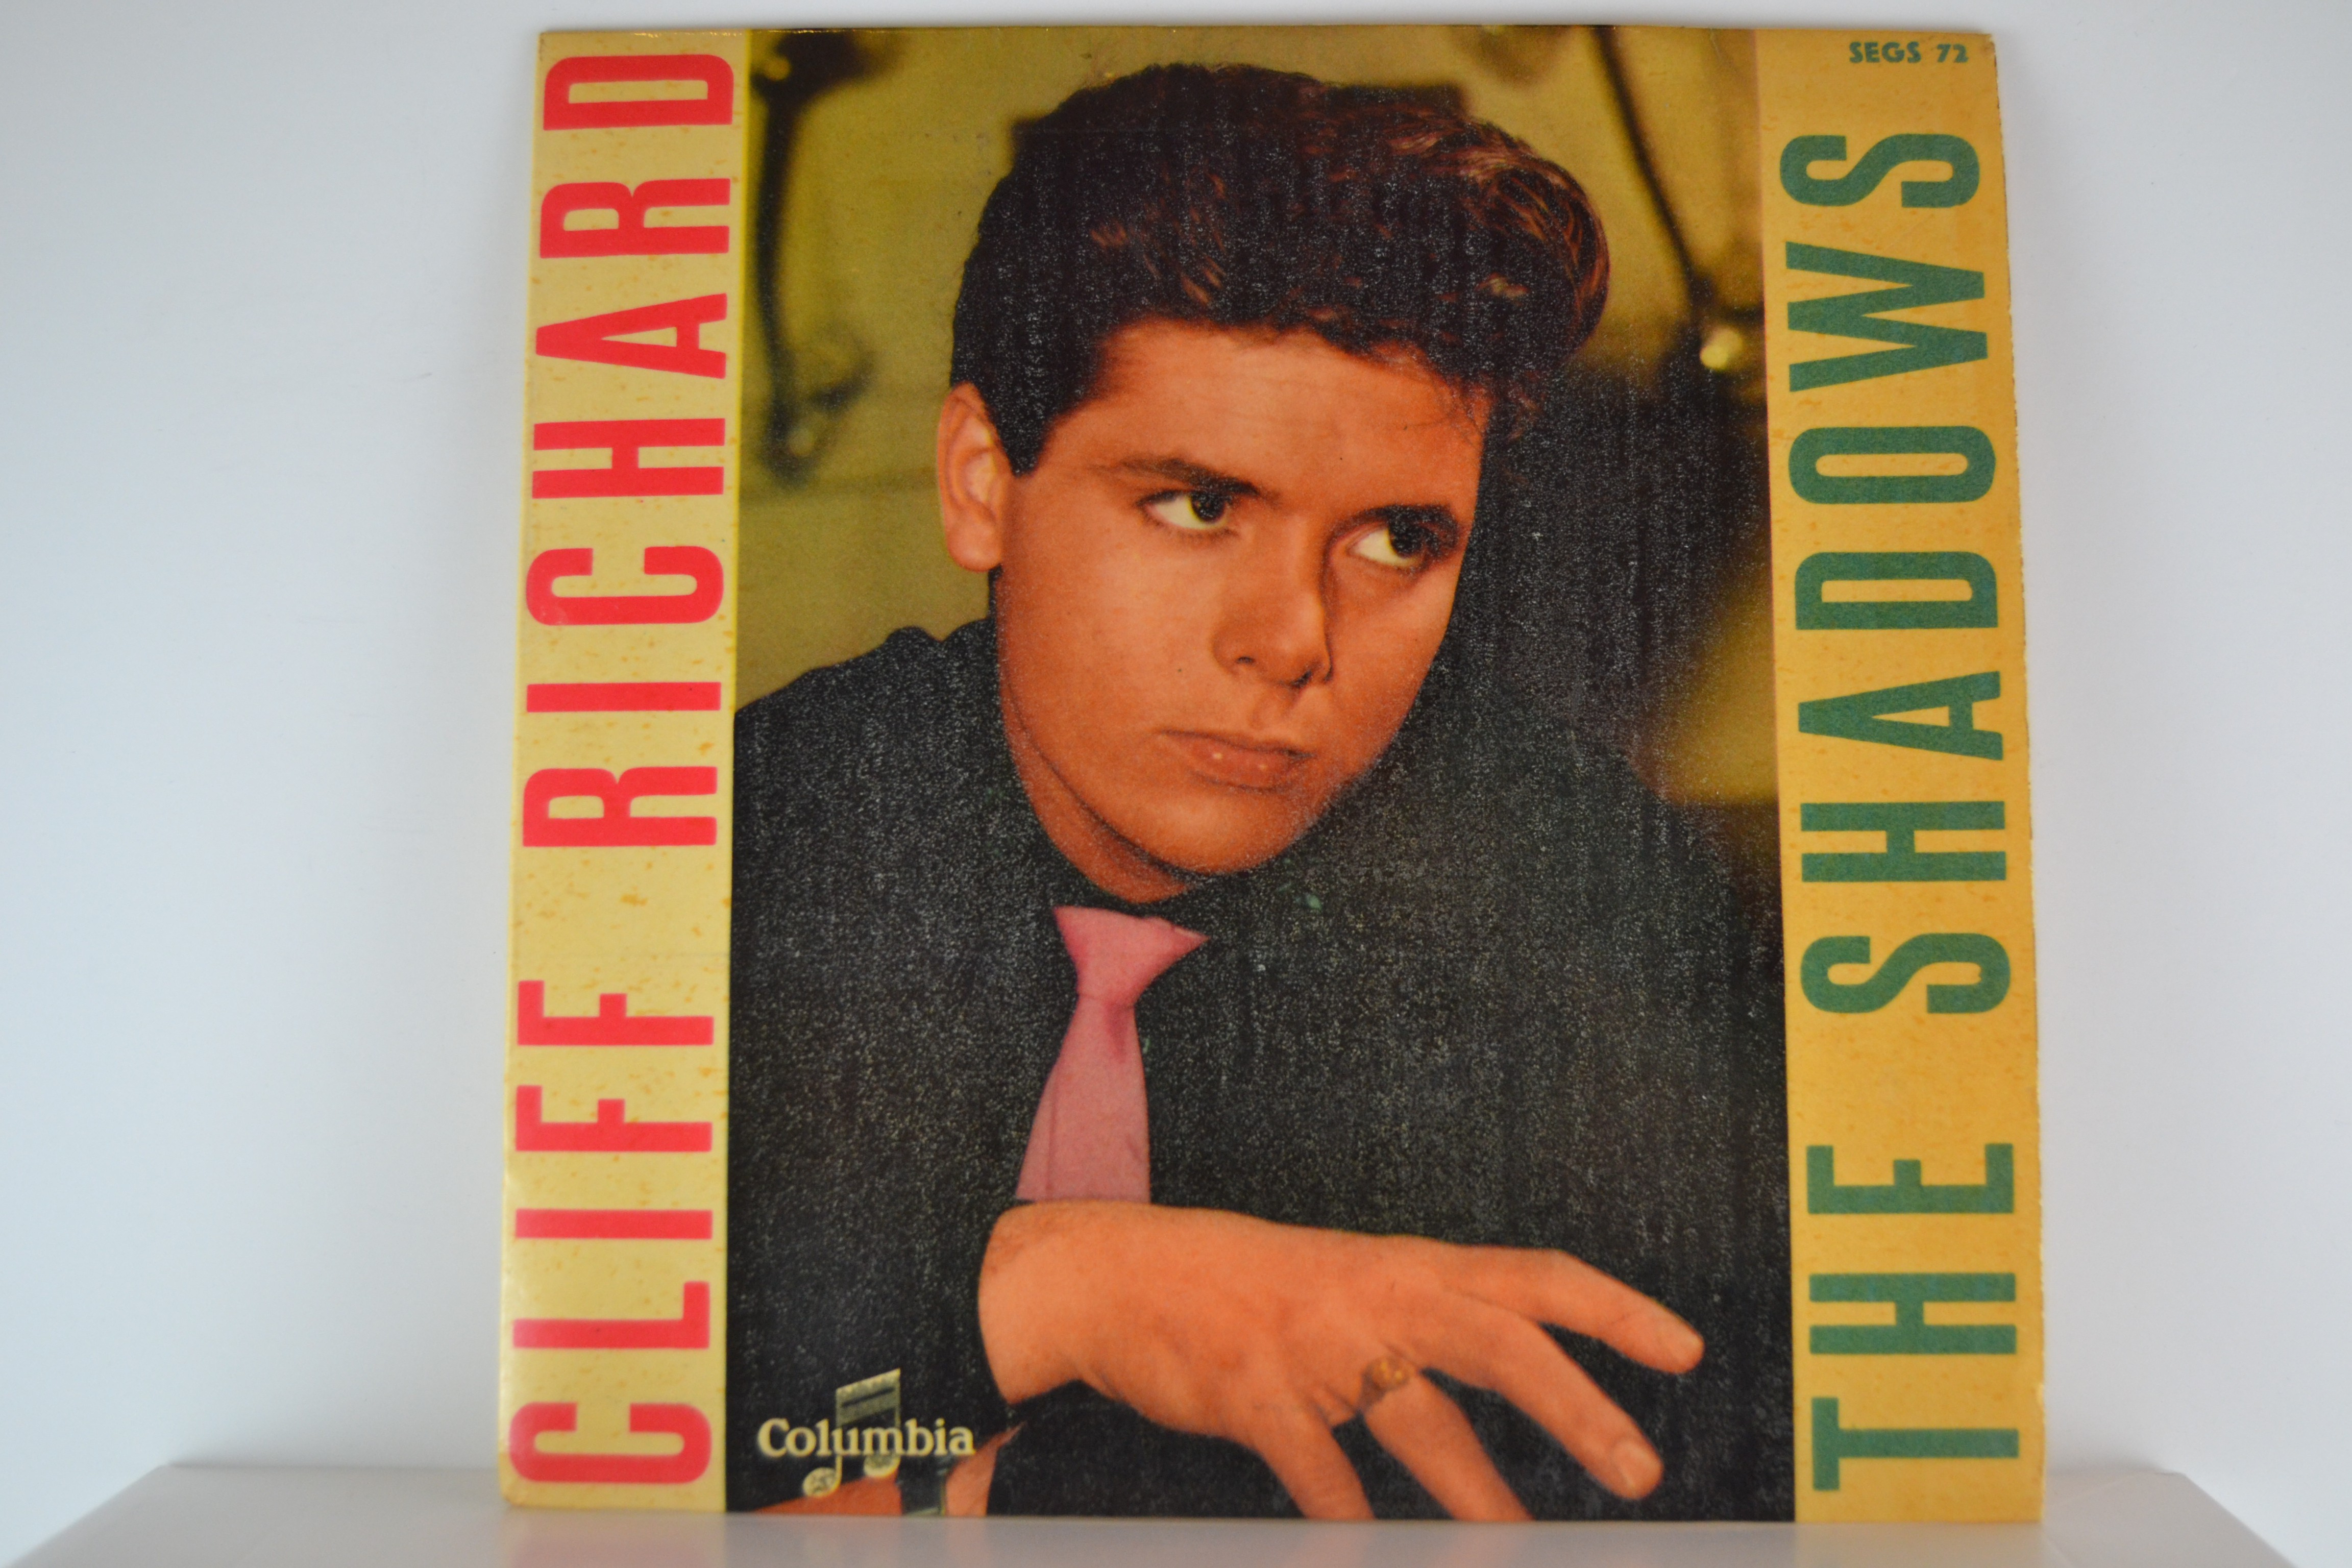 CLIFF RICHARD : (EP) Nine times out of ten / Thinking of our love / SHADOWS The : Apache / Quatermasster's stores